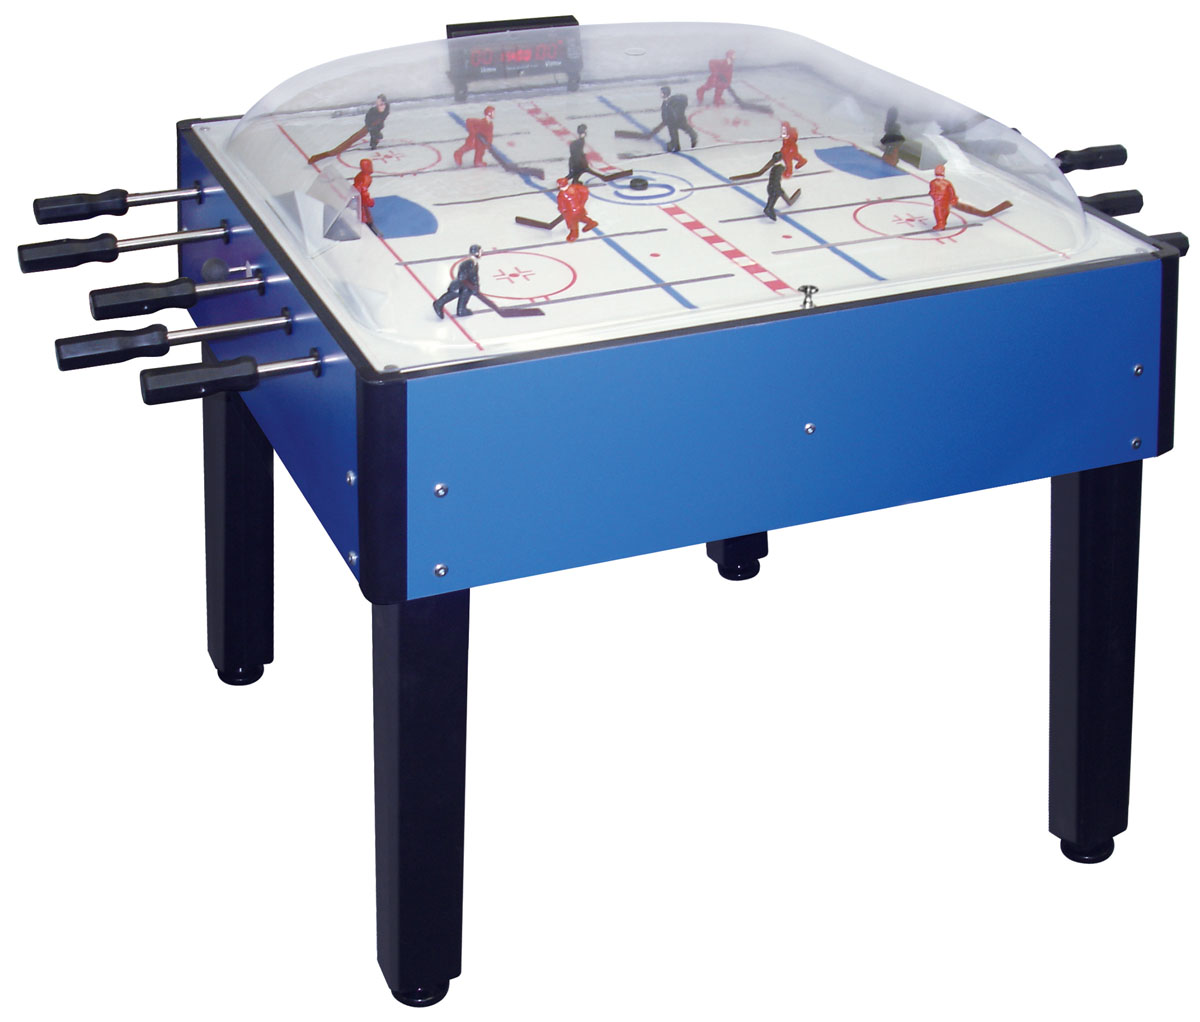 Breakout Dome Hockey Table